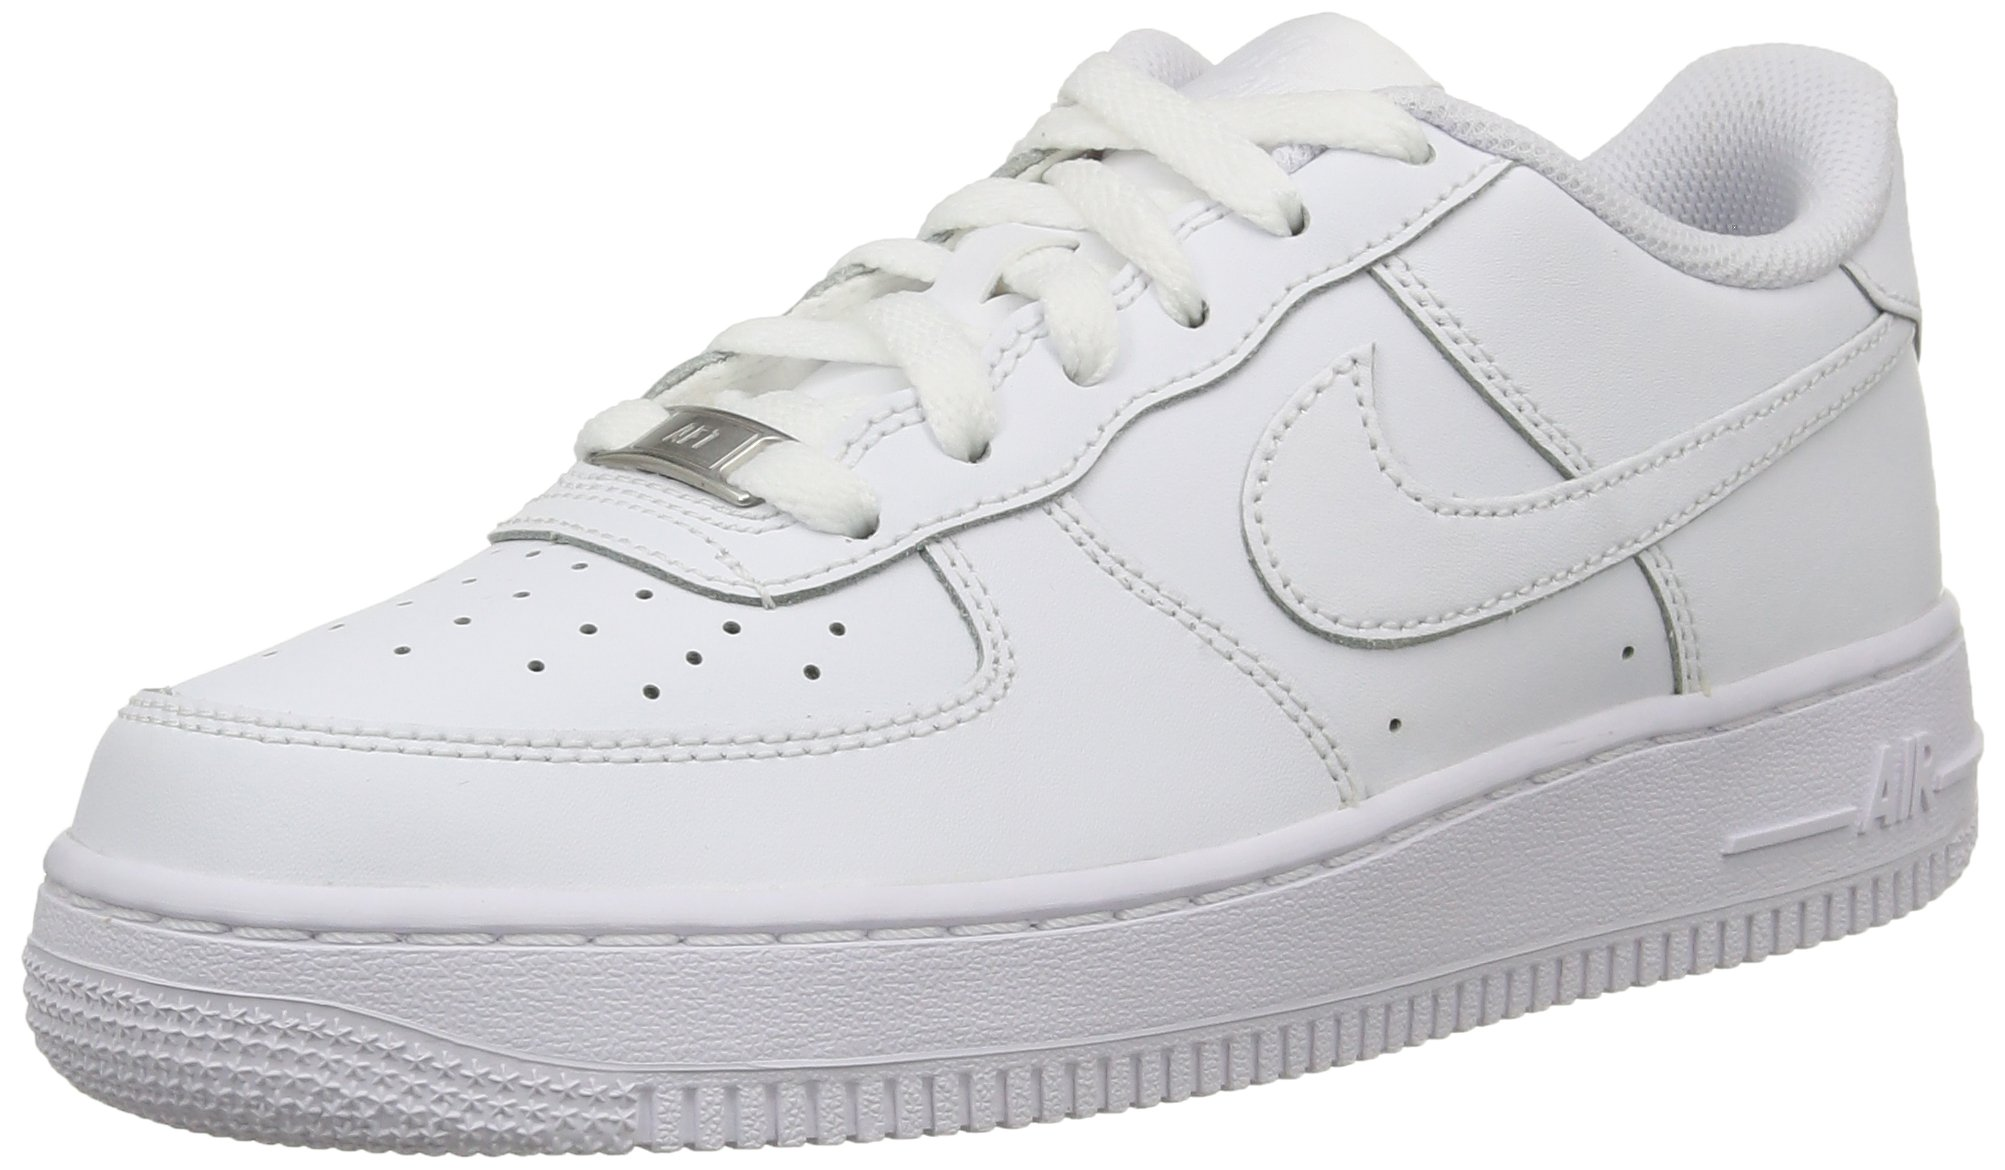 Nike Air Force 1 Low GS All White Youth Lifestyle Sneakers New All White - 7